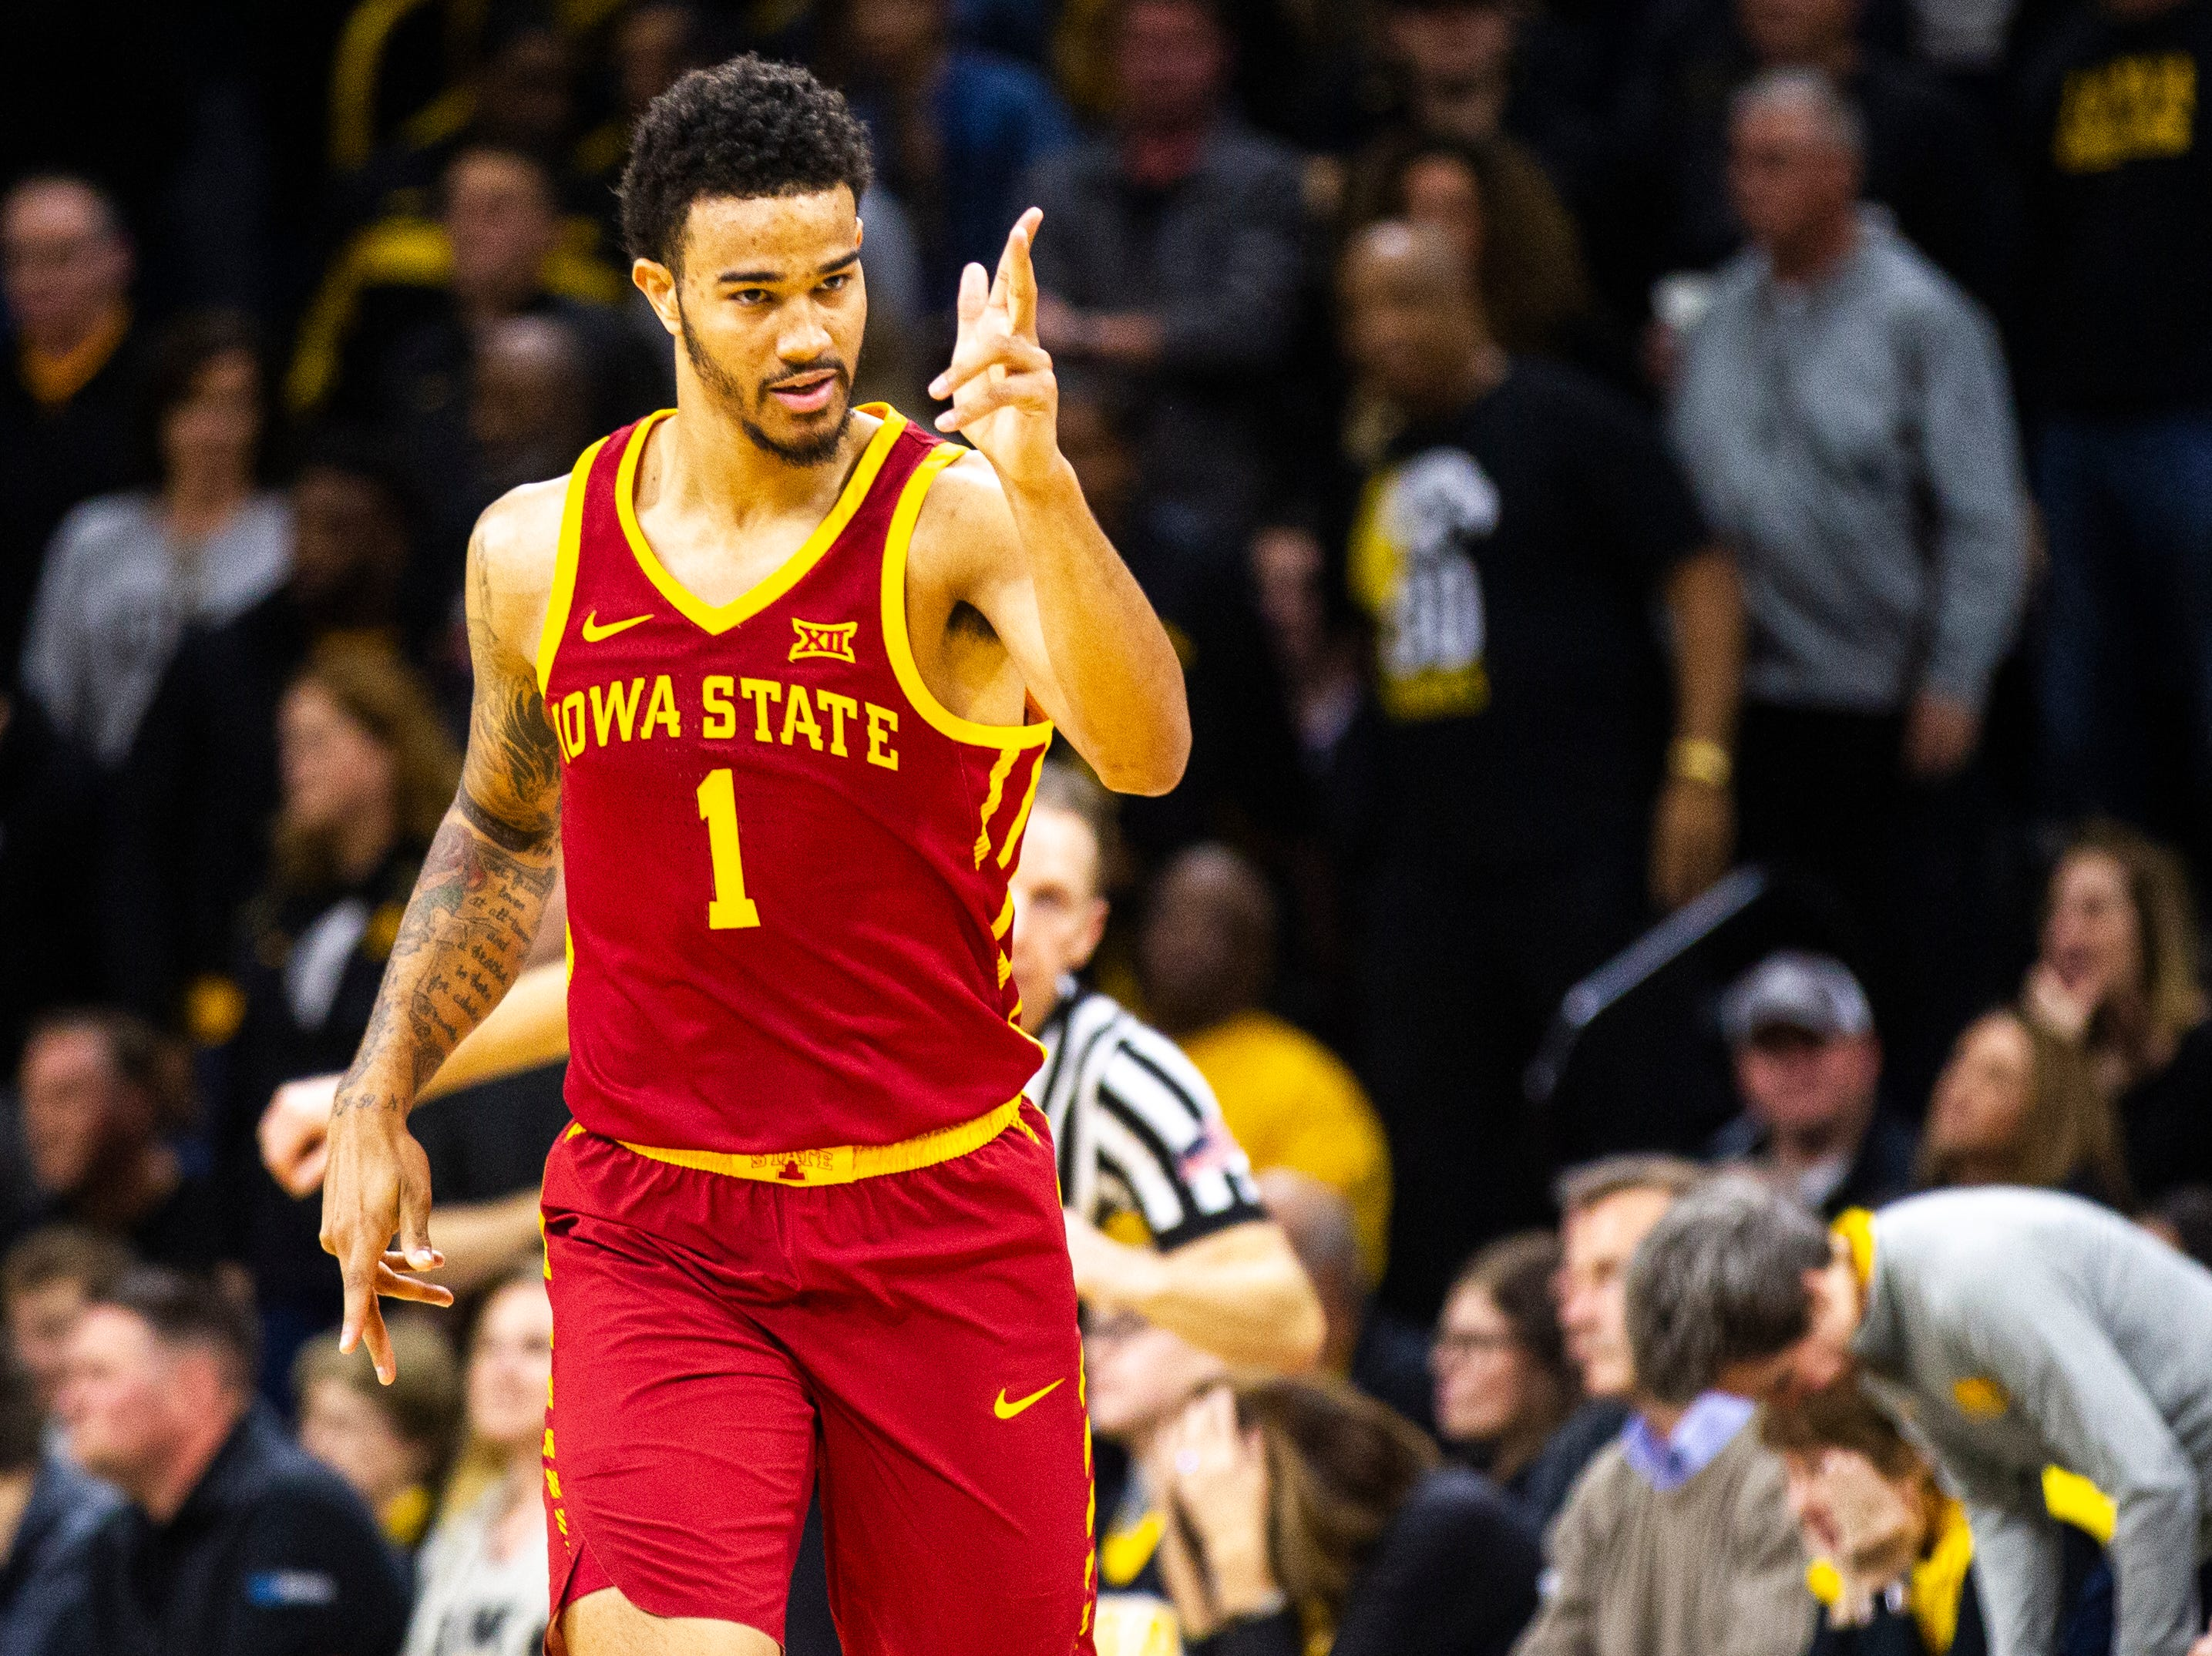 Iowa State guard Nick Weiler-Babb (1) celebrates after making a 3-point basket during a NCAA Cy-Hawk series men's basketball game on Thursday, Dec. 6, 2018, at Carver-Hawkeye Arena in Iowa City.